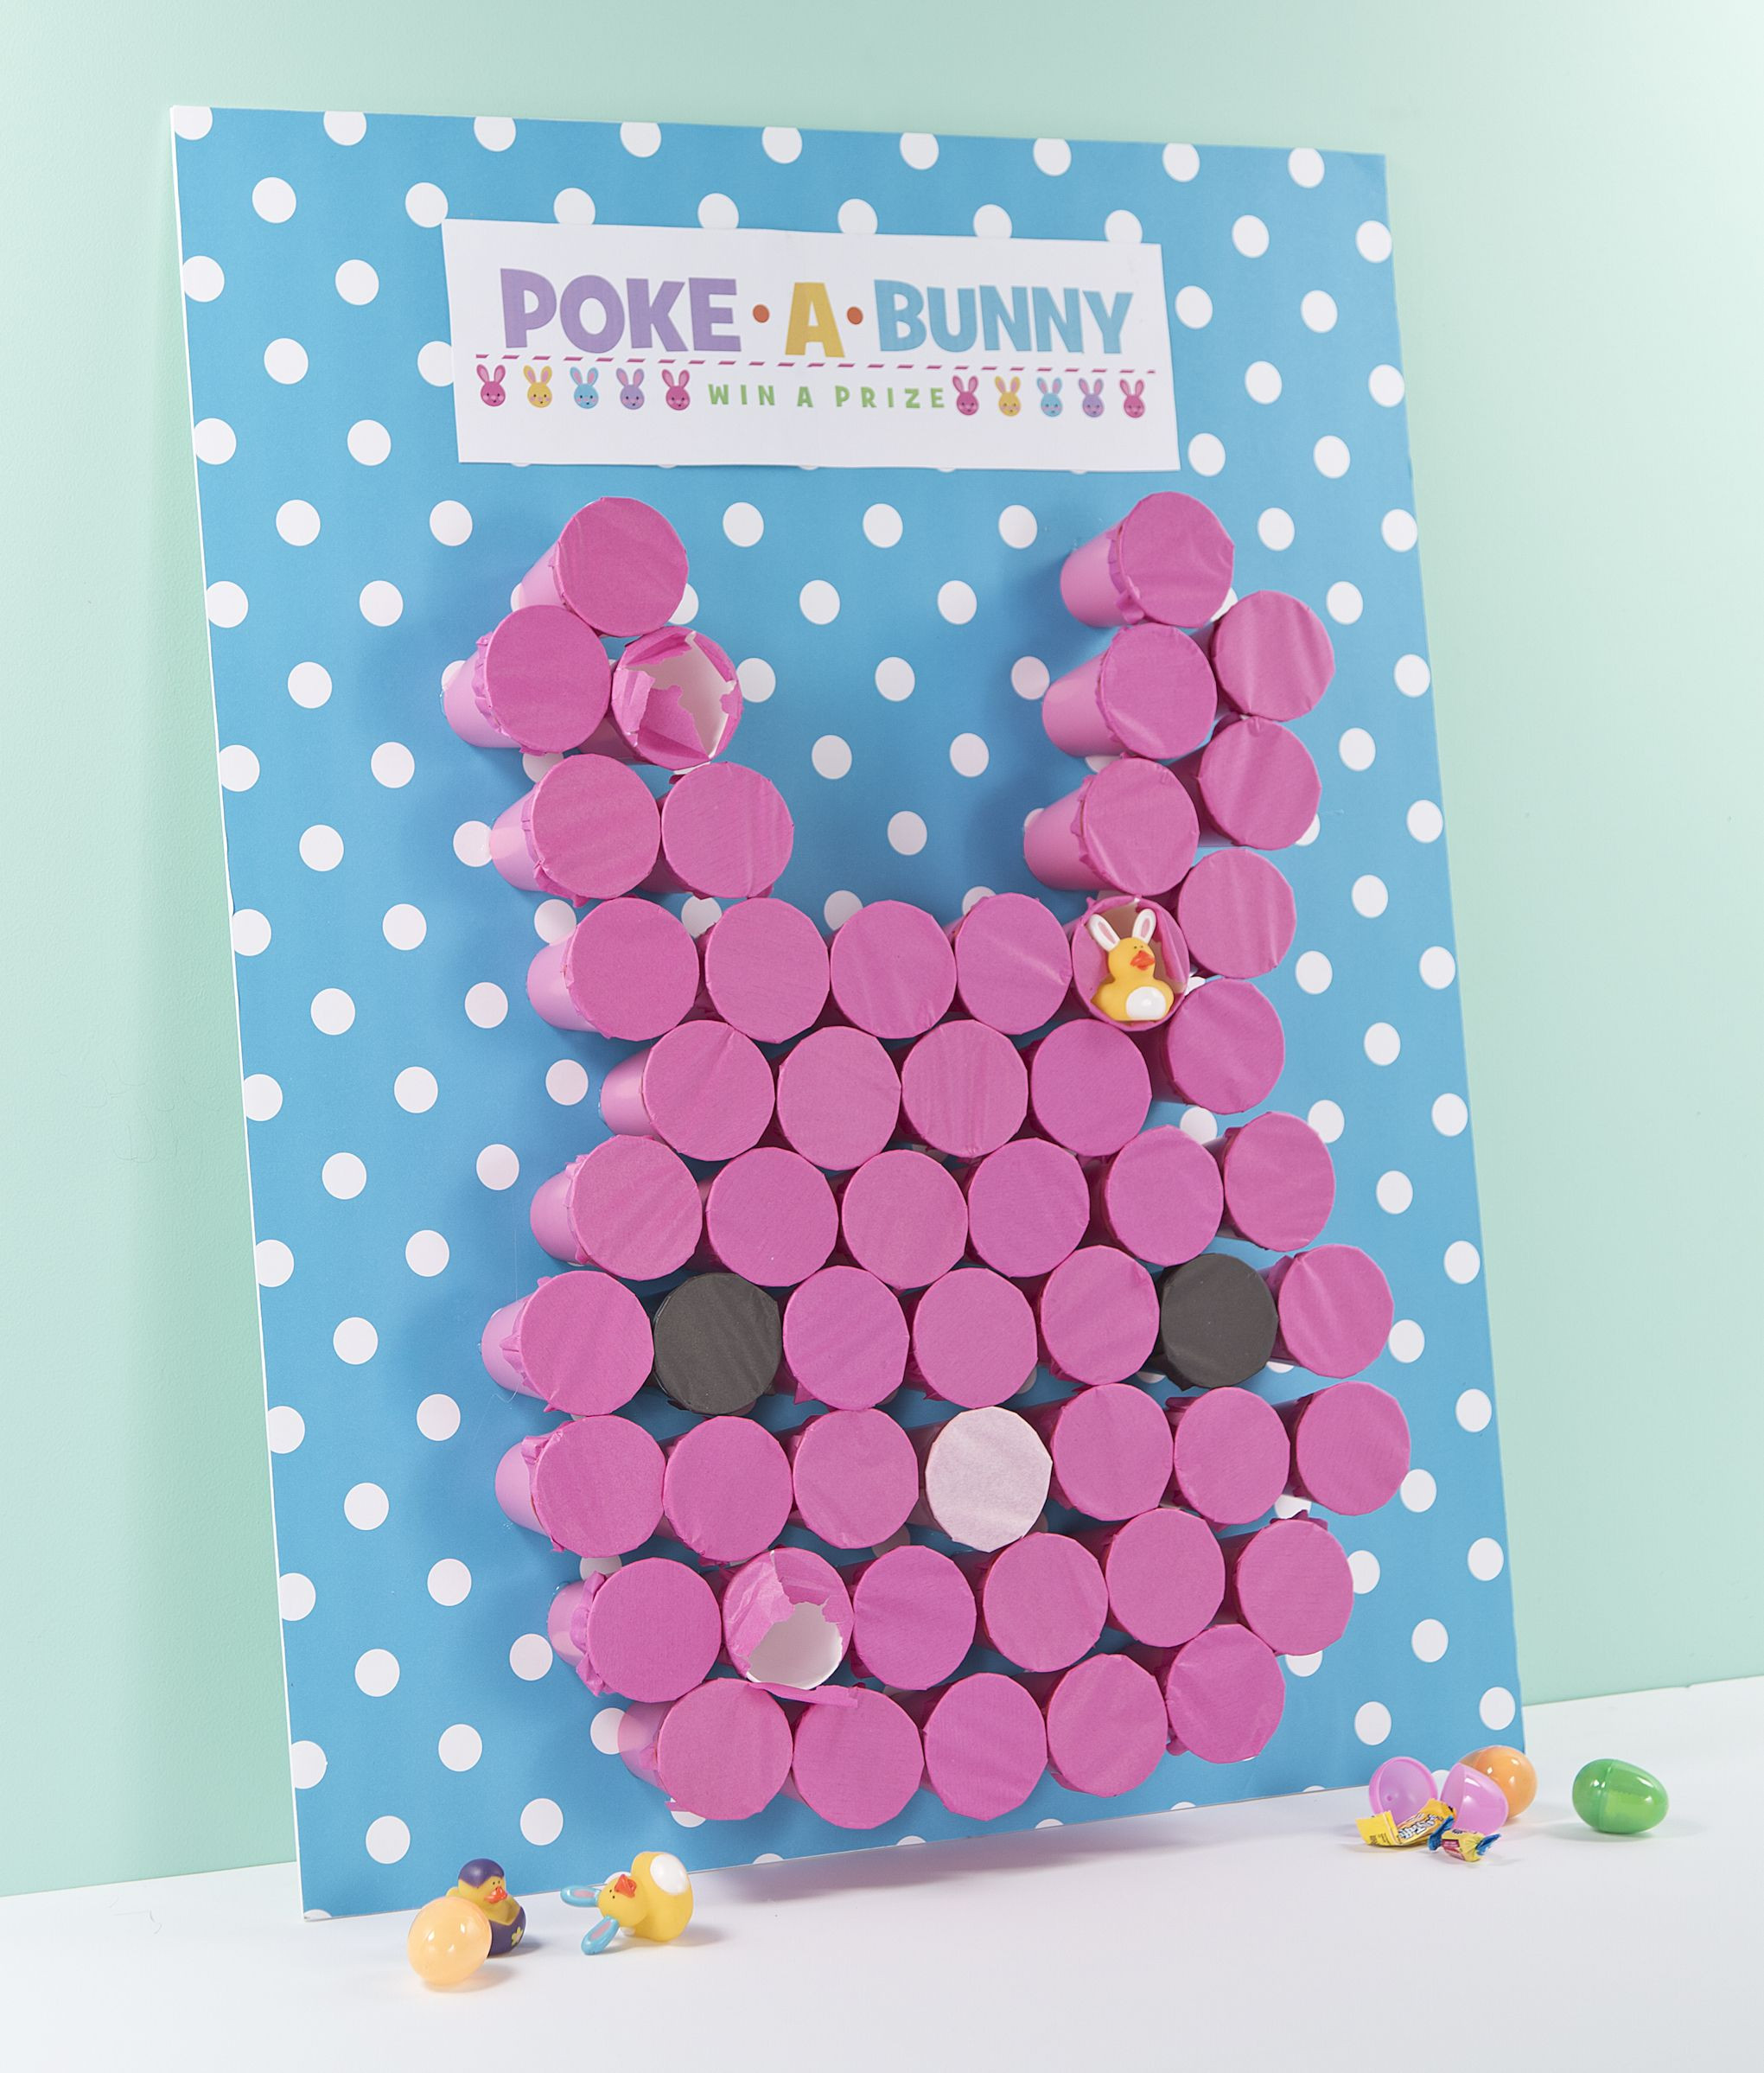 Easter Party Game Ideas Kids  Fun Easter Game Ideas outdoor DIY